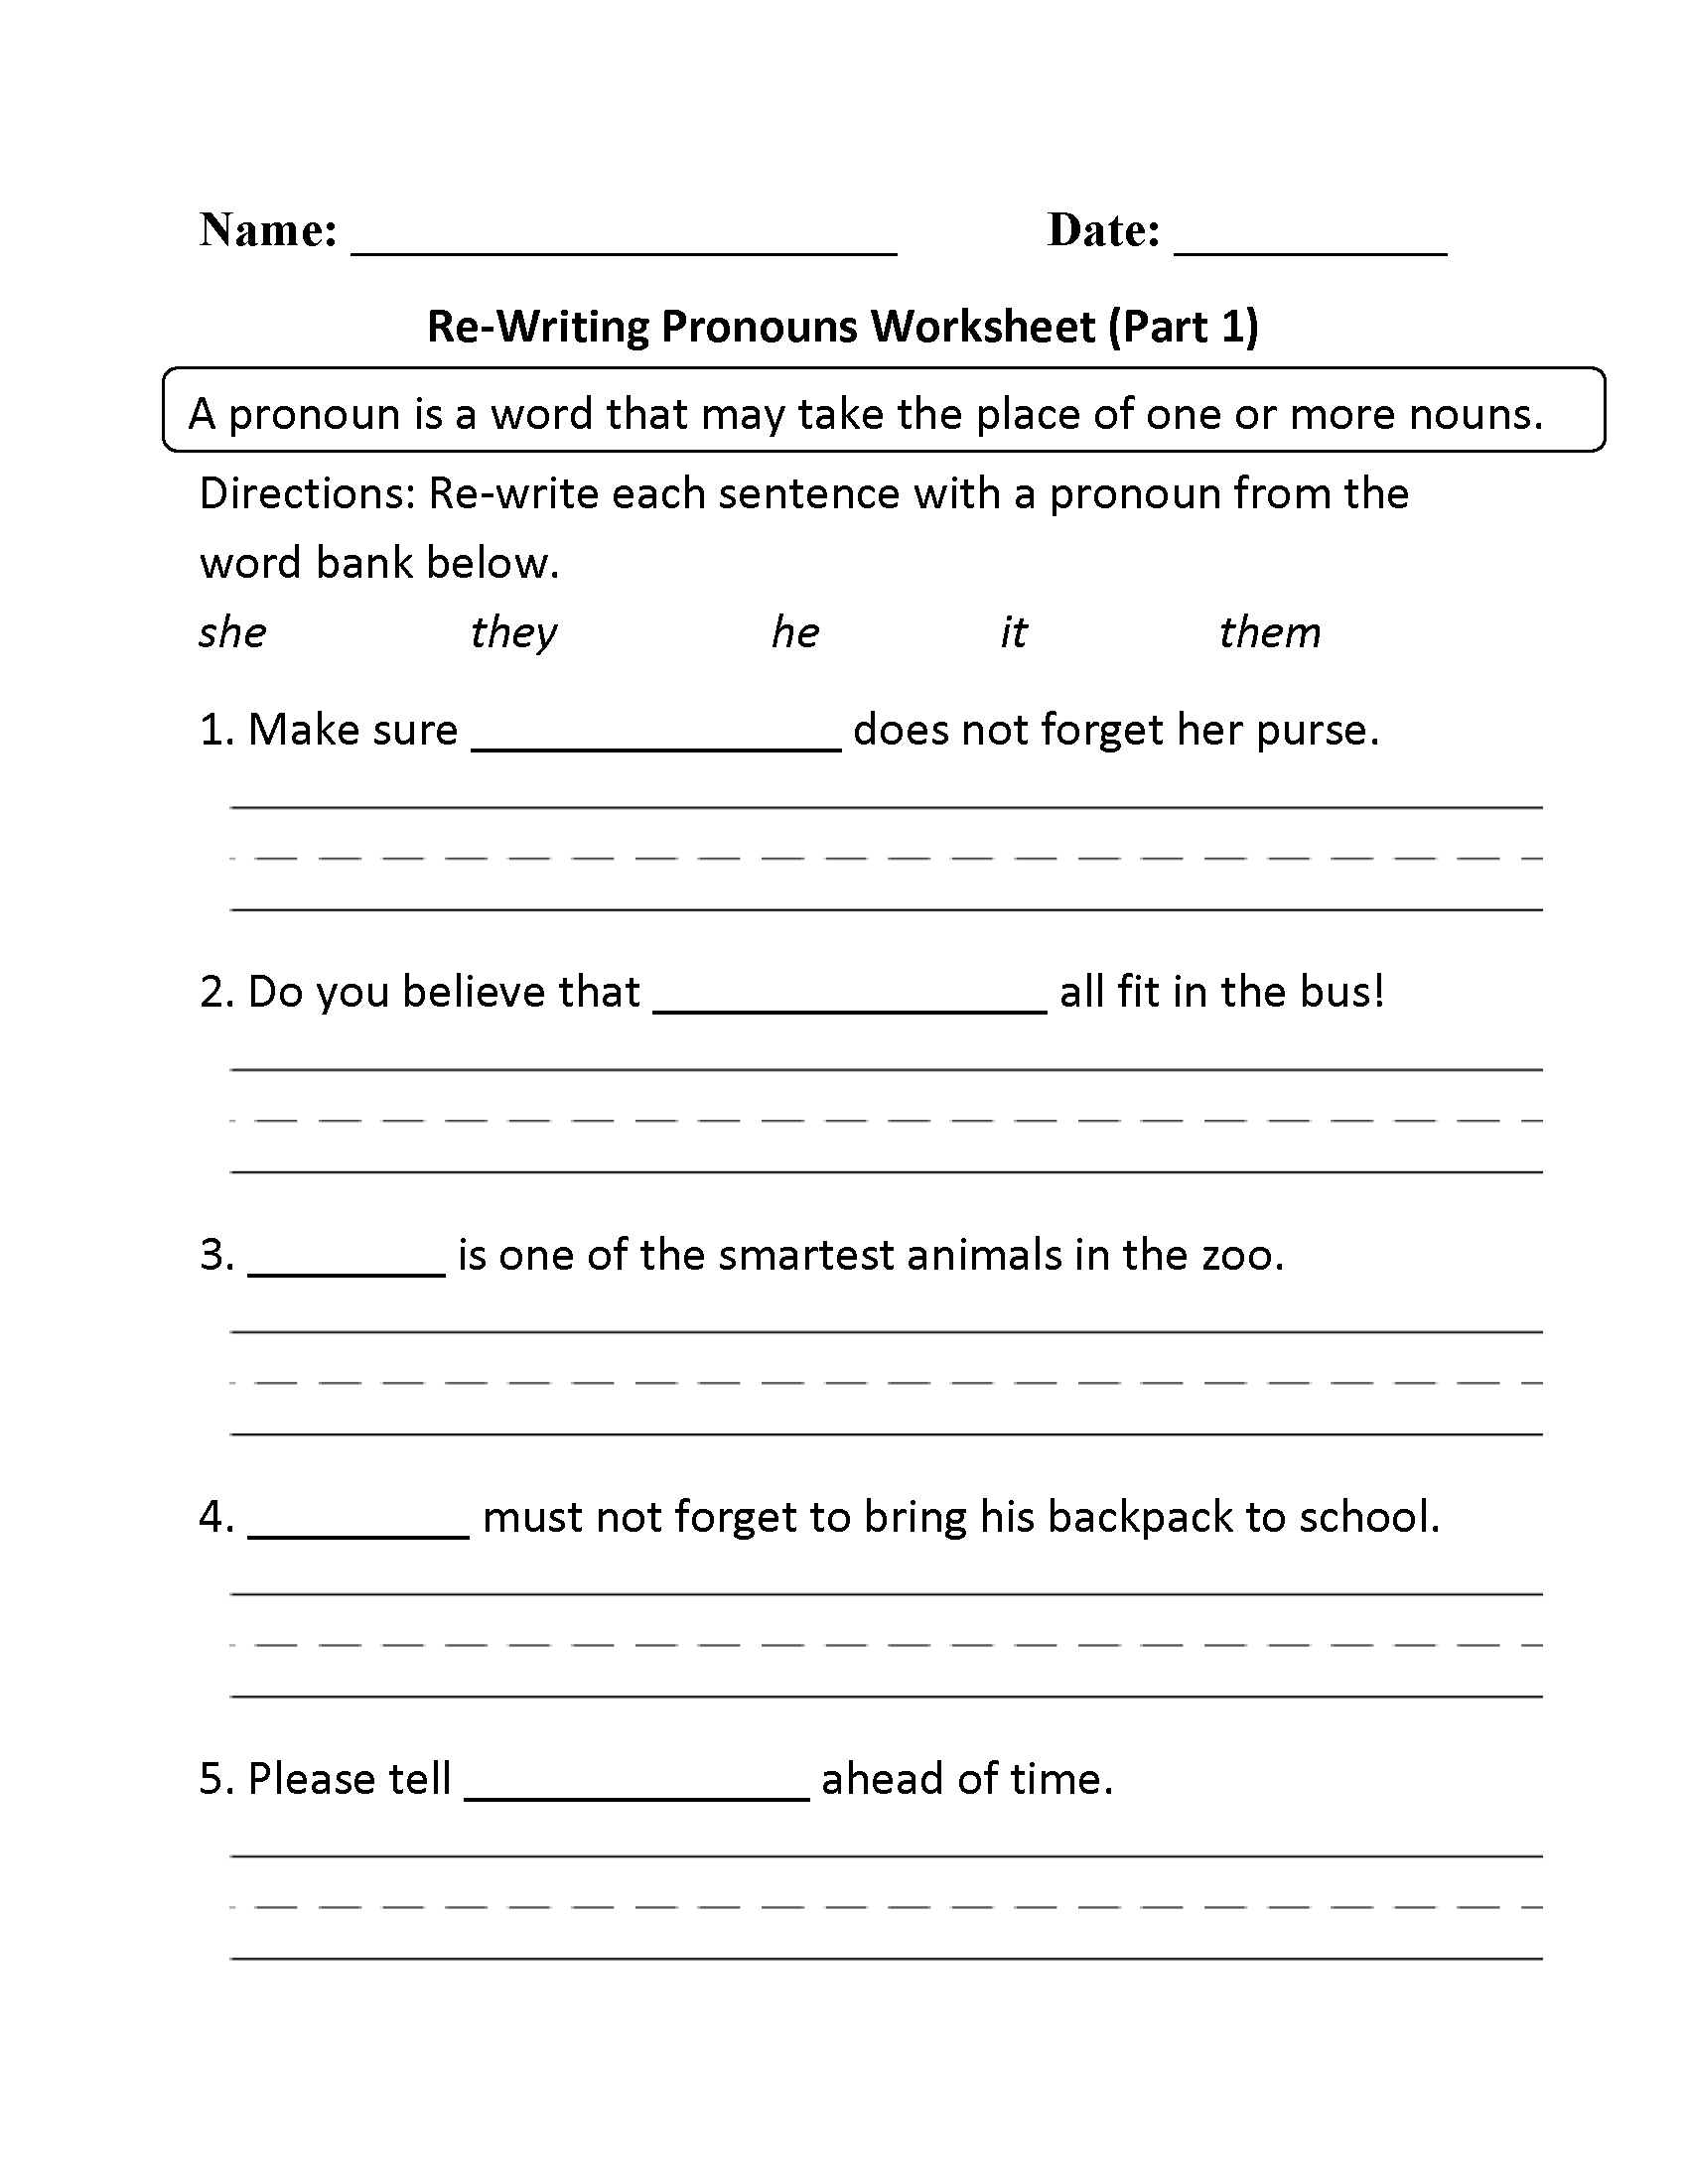 Re Writing Pronouns Worksheet Part 1